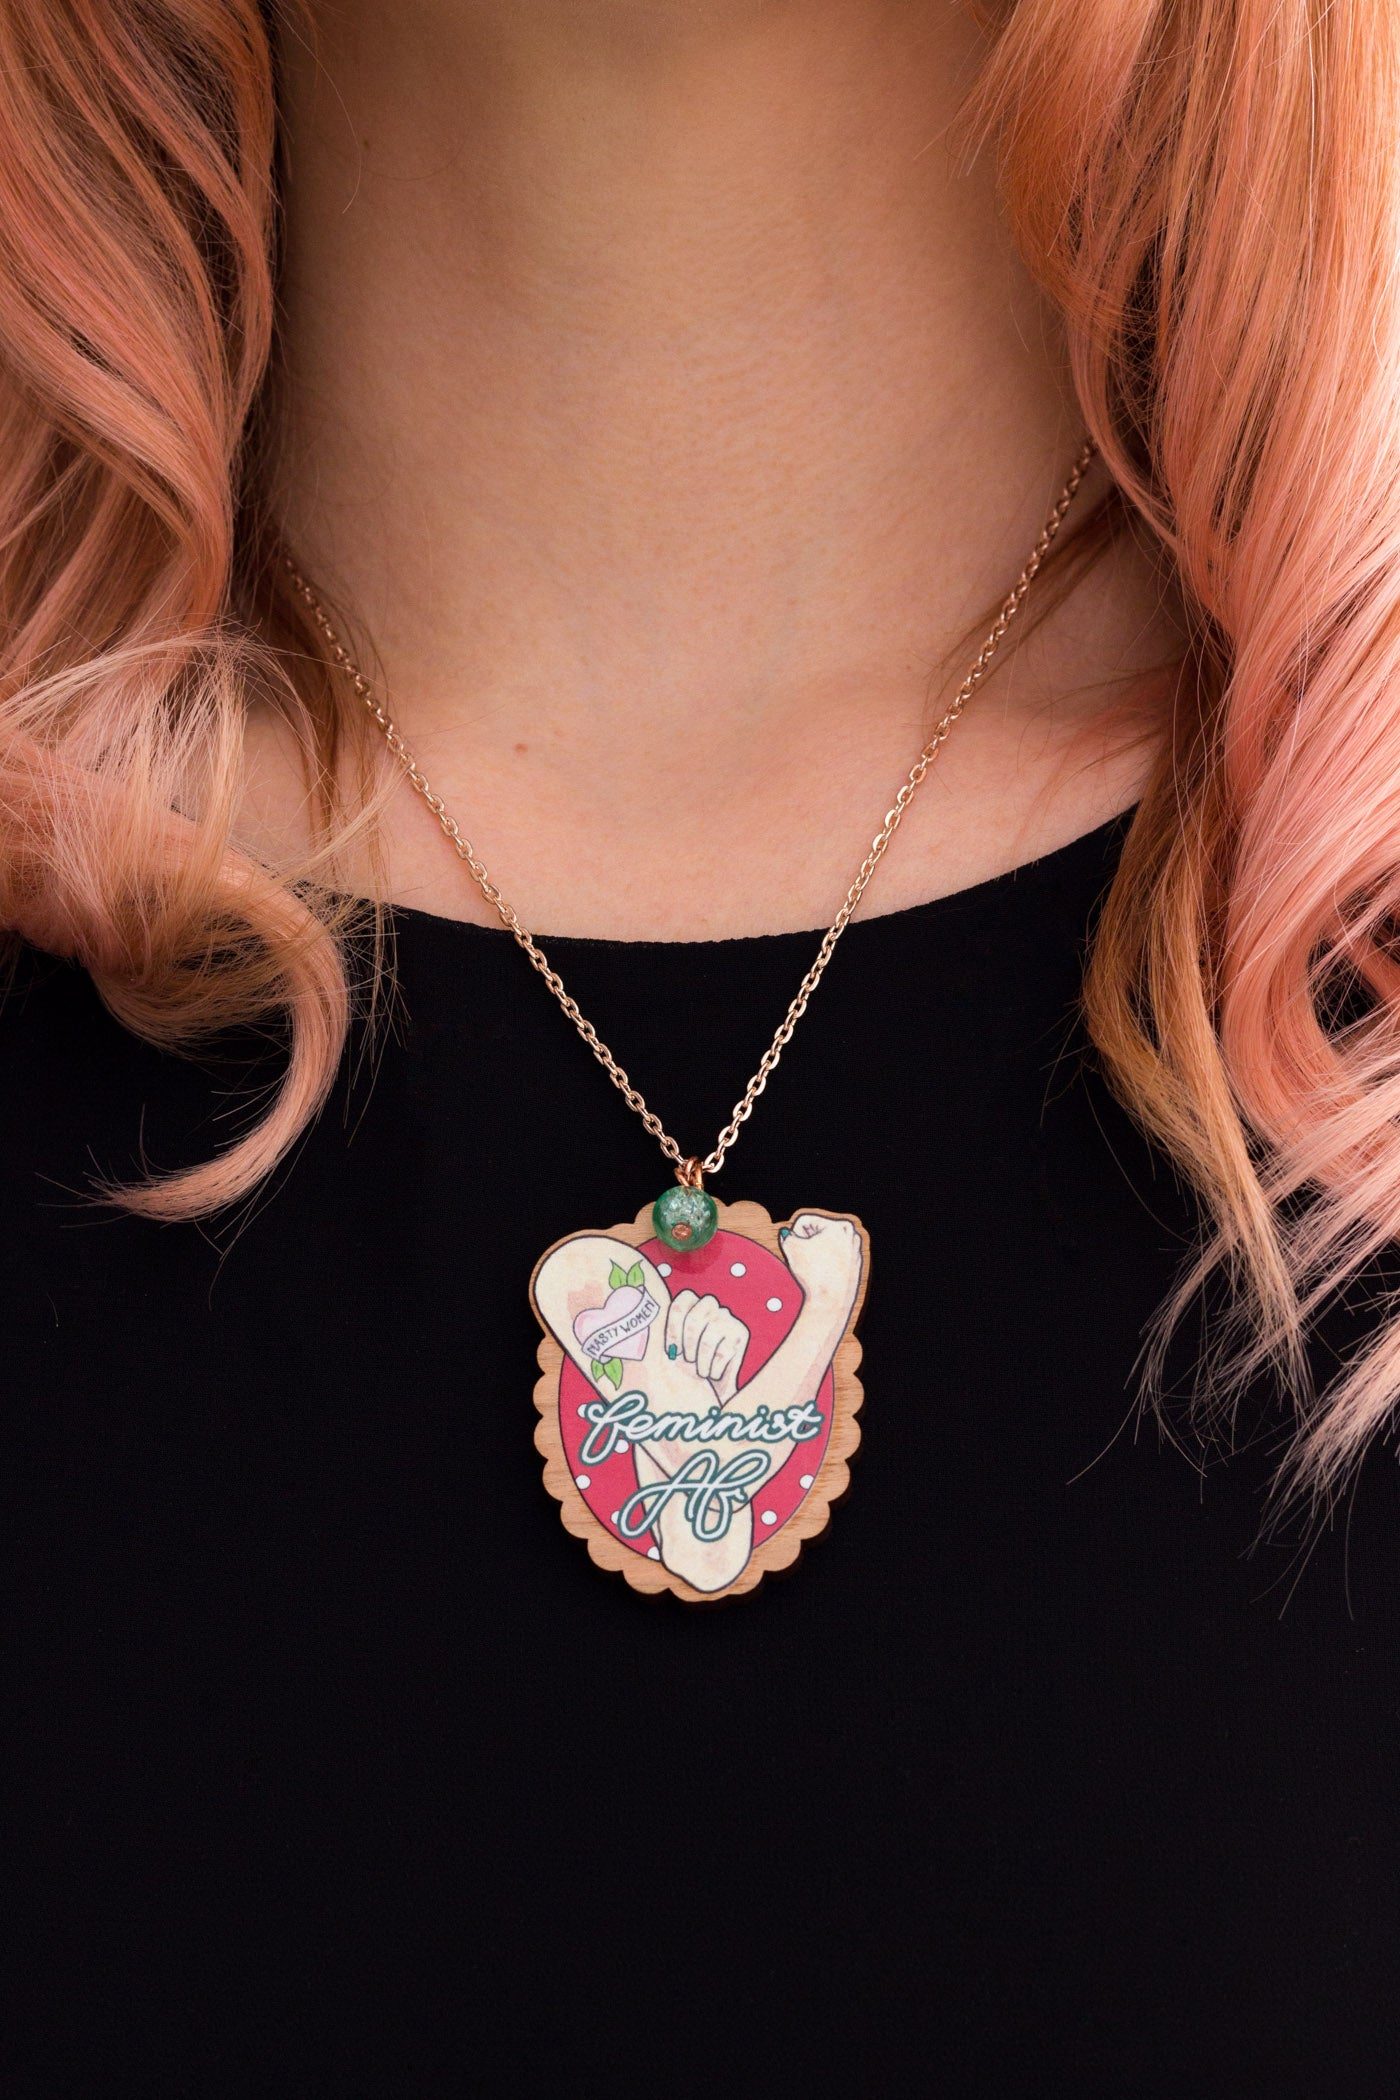 Nasty Woman / Feminist AF Rose Gold & Wood Pendant Necklace - A Rose Cast